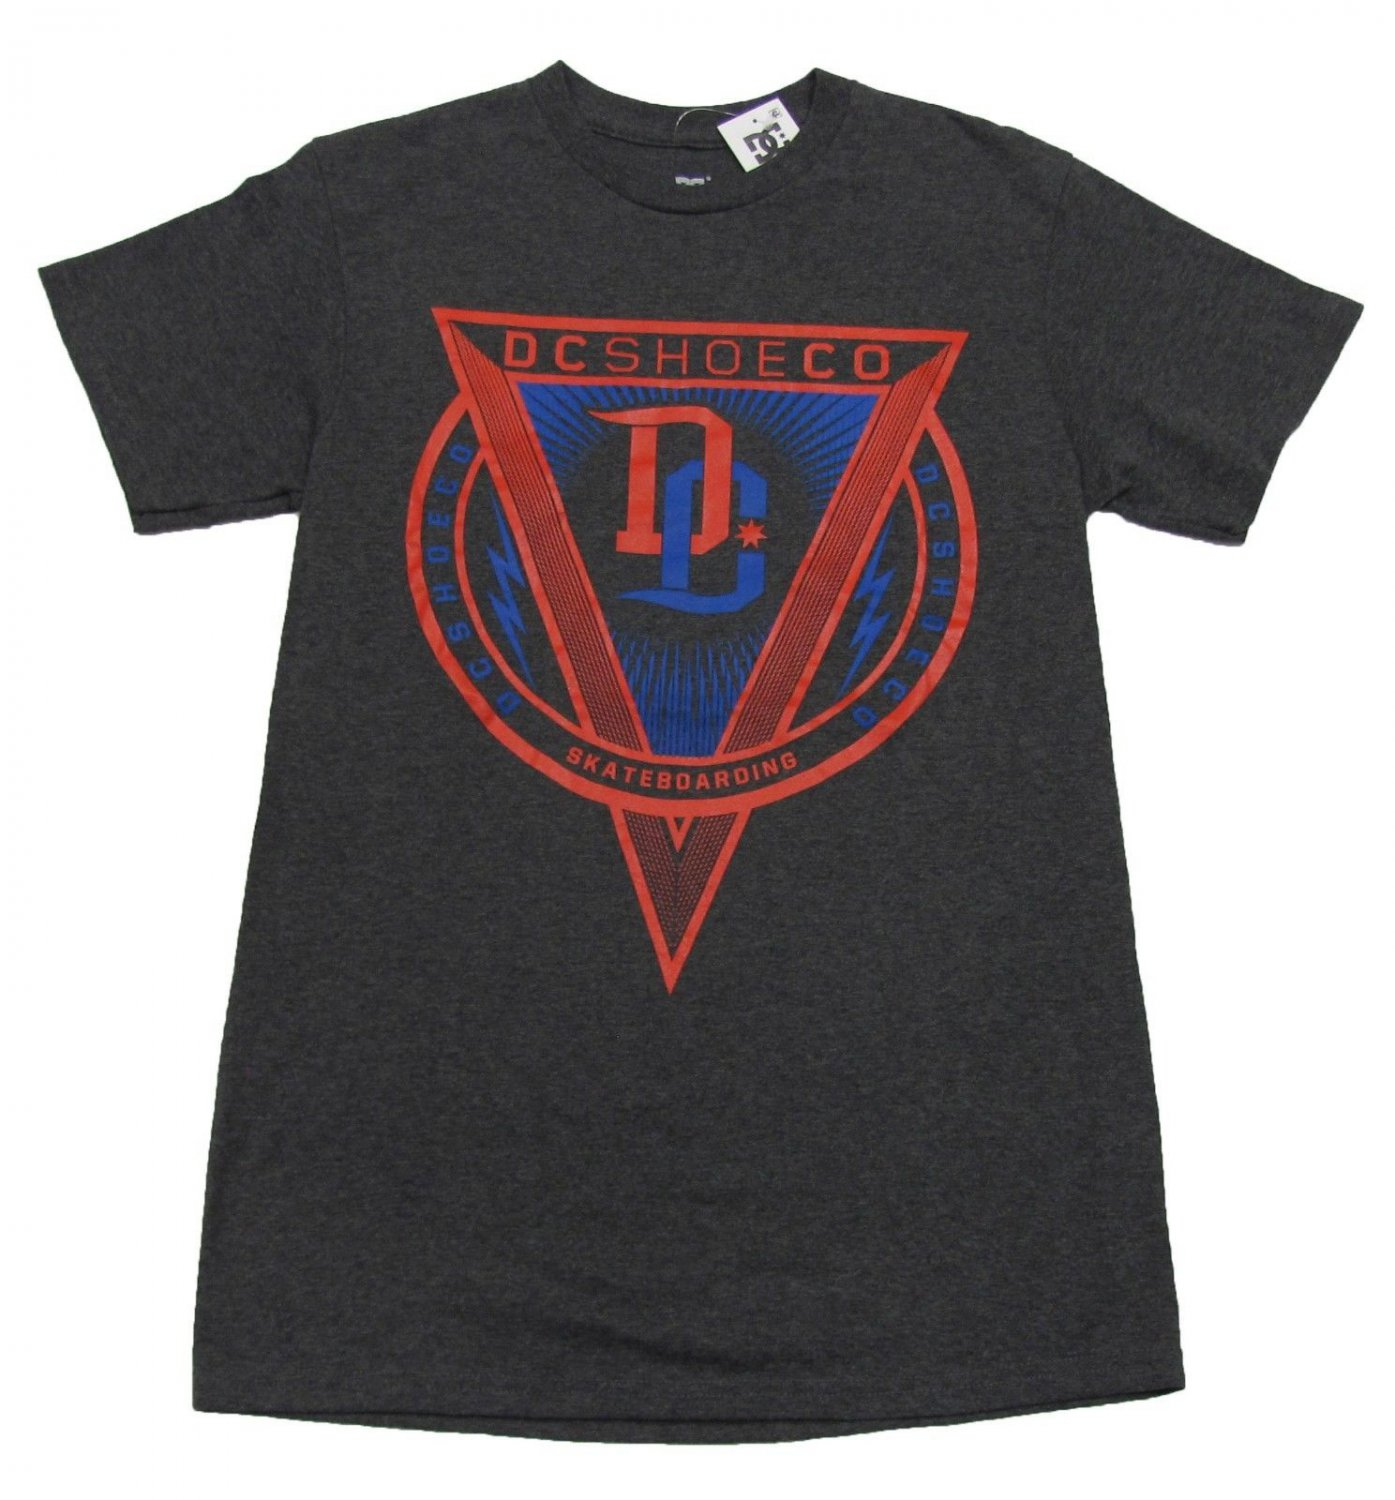 DC Shoes Mens S Triangle Tee Shirt Charcoal Gray Crew T-shirt Small New